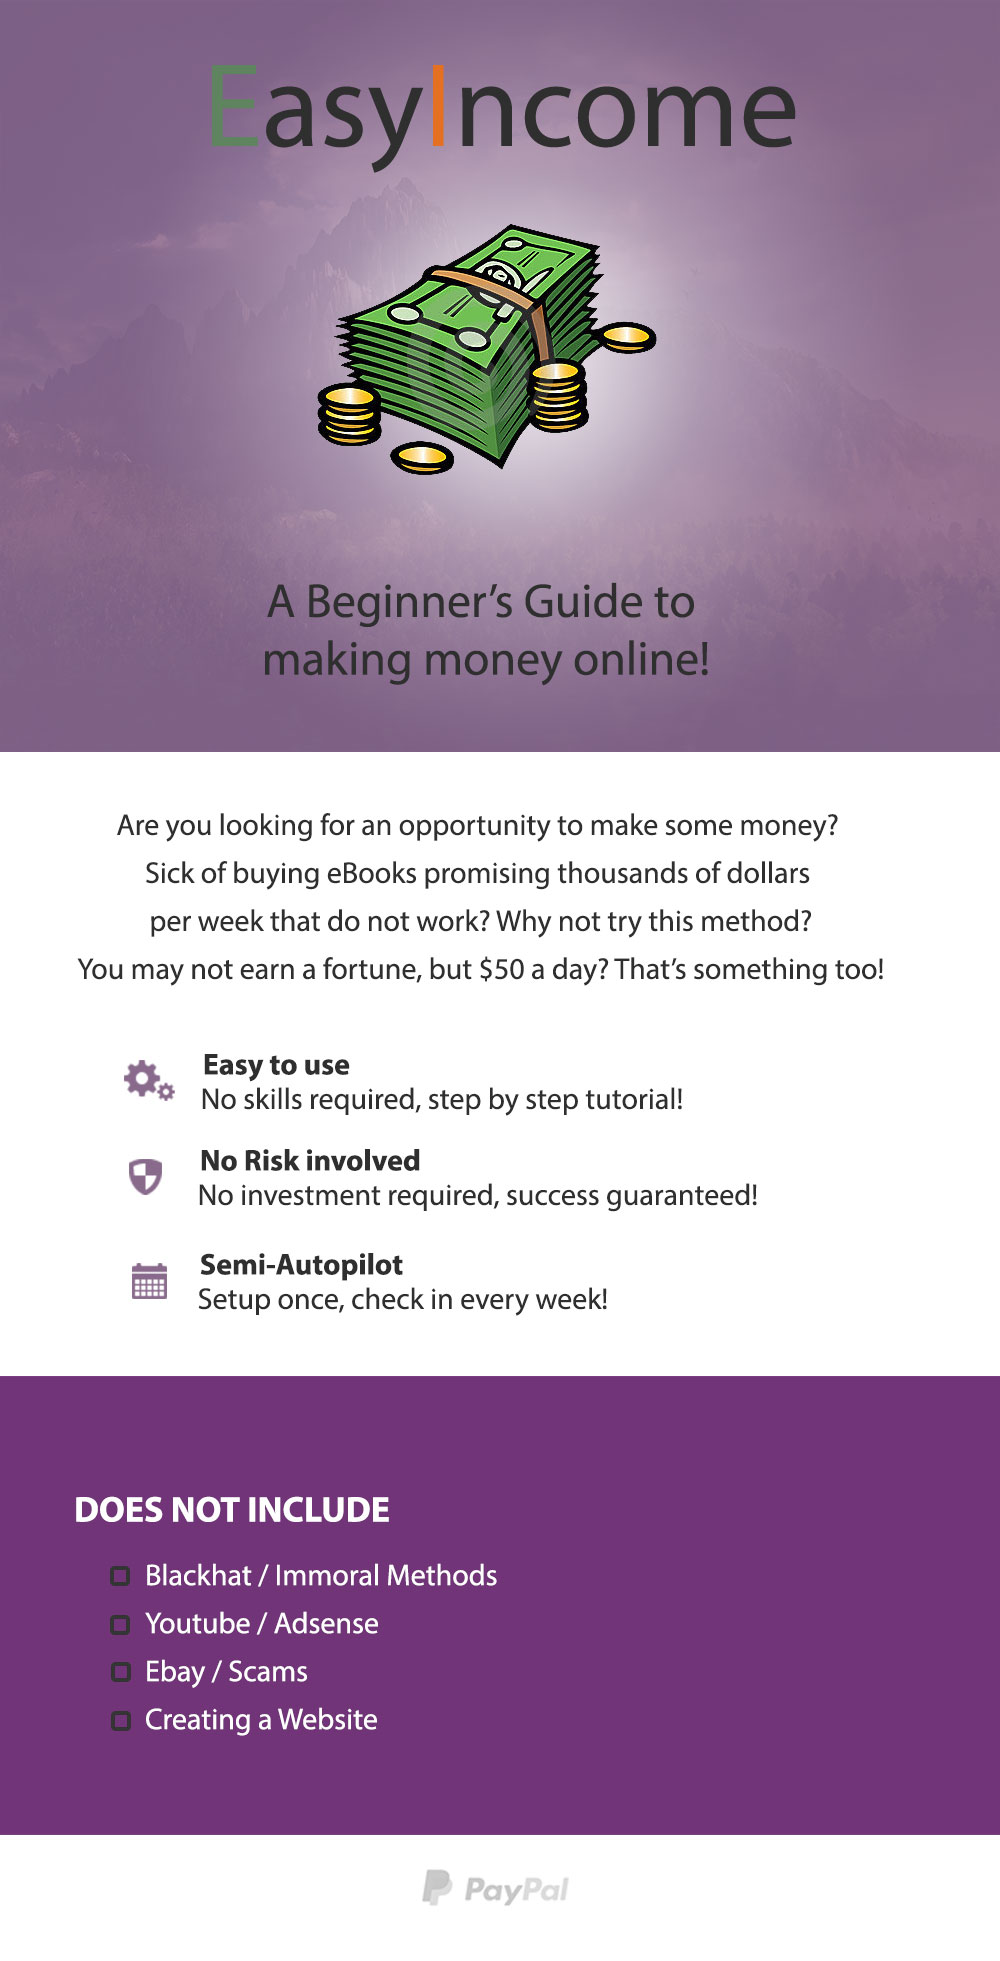 Learn how to make 50 per day working online for $15